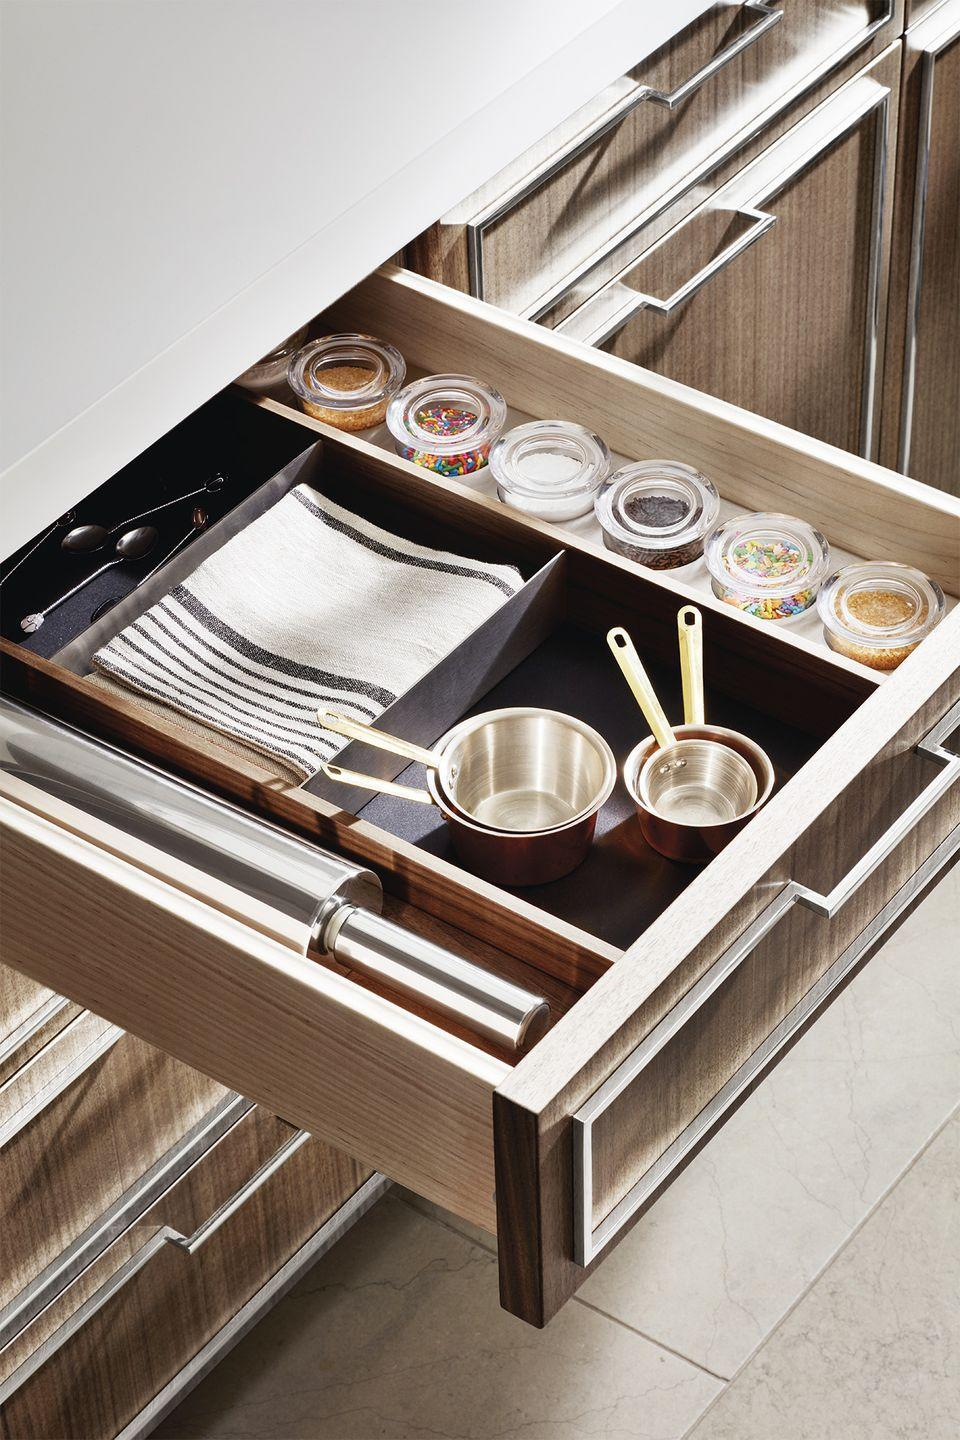 <p>Group similar items into categories, you can find exactly what you need in a pitch. In this case, the most-used baking tools were kept together, along with a range of sprinkles and sugars for decorating sweet treats. </p>